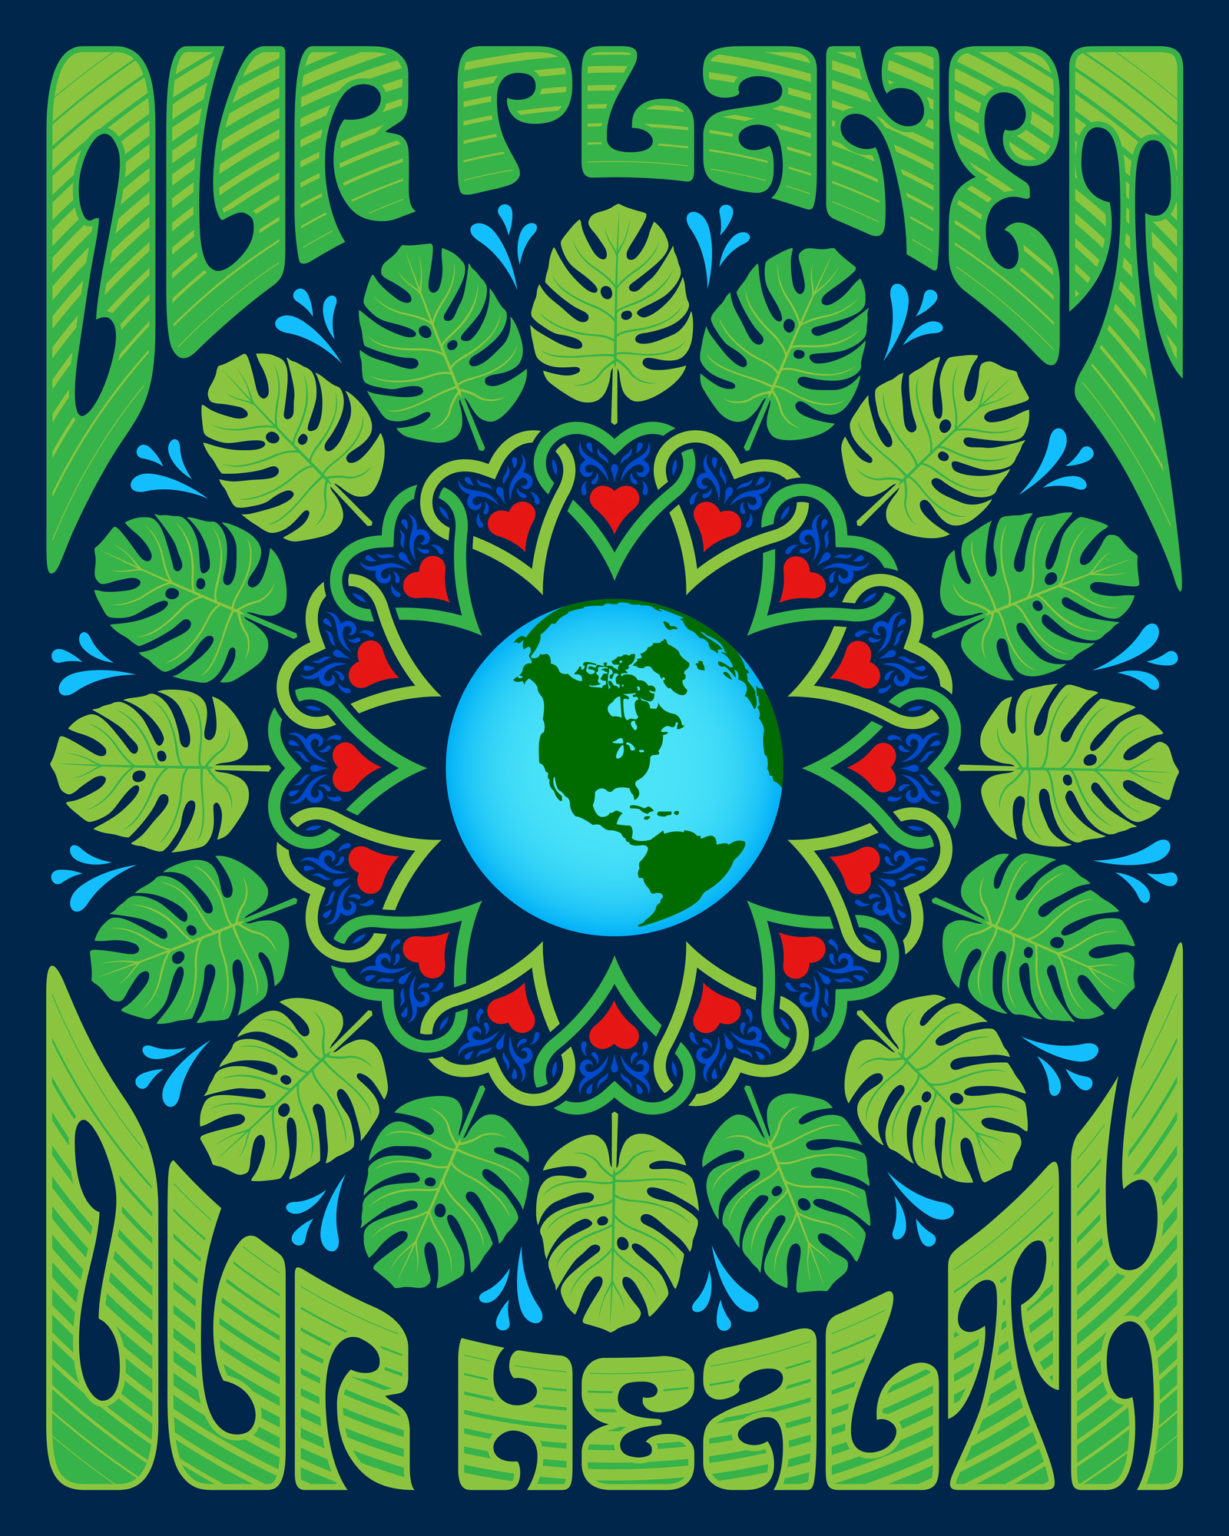 Our Planet, Our Health - Earth Day 2020 poster